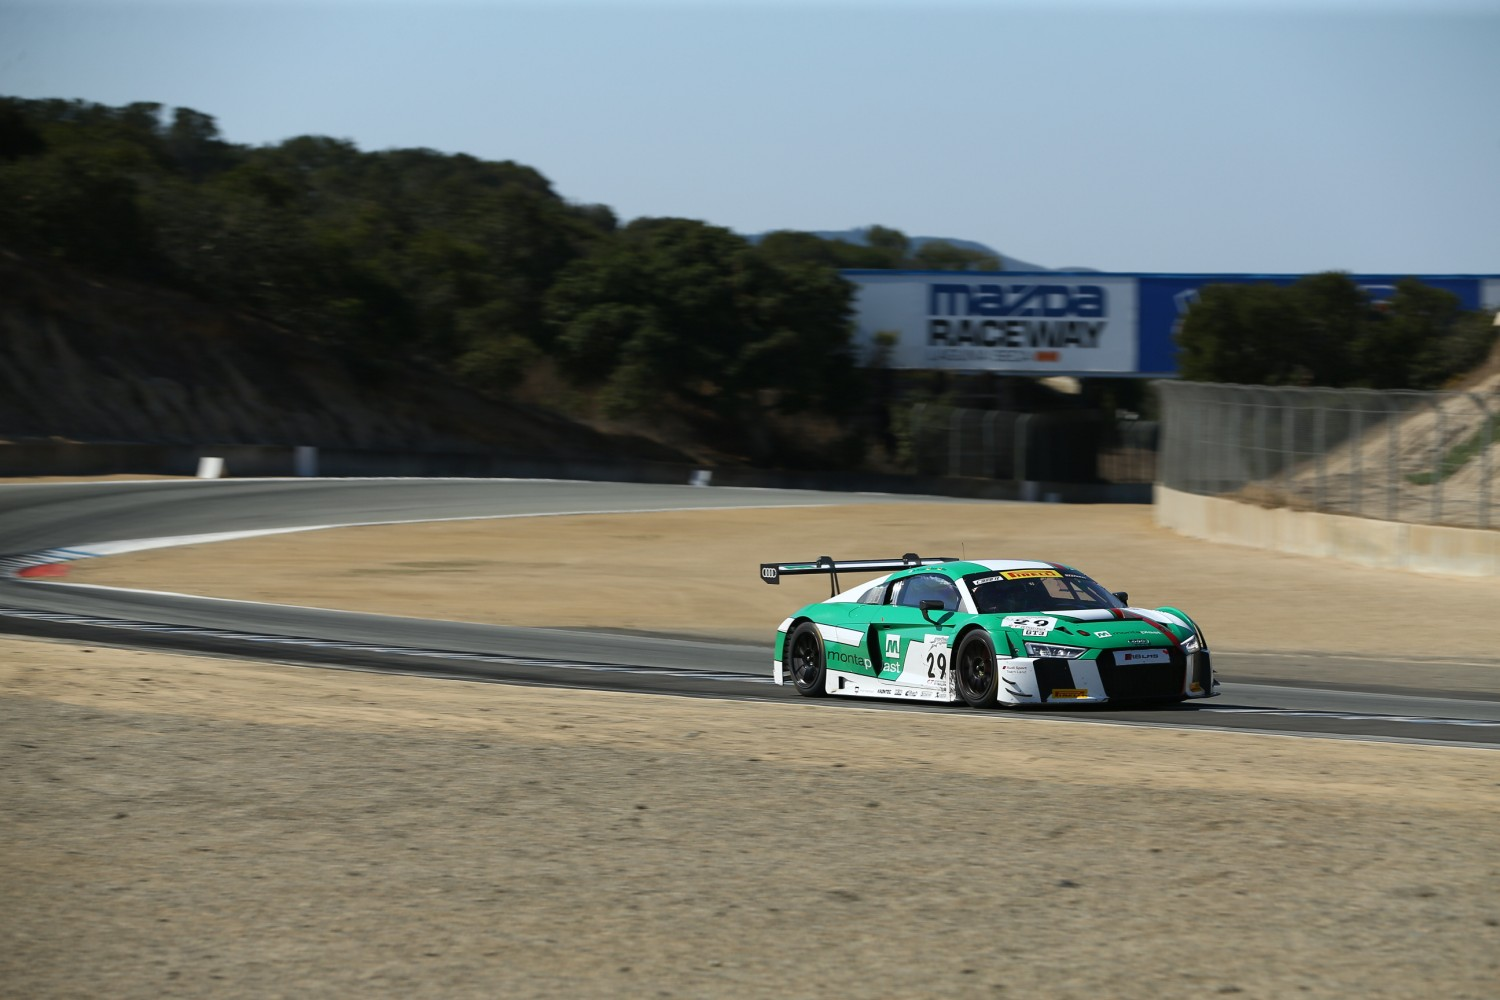 Audi continues to lead with two hours to go